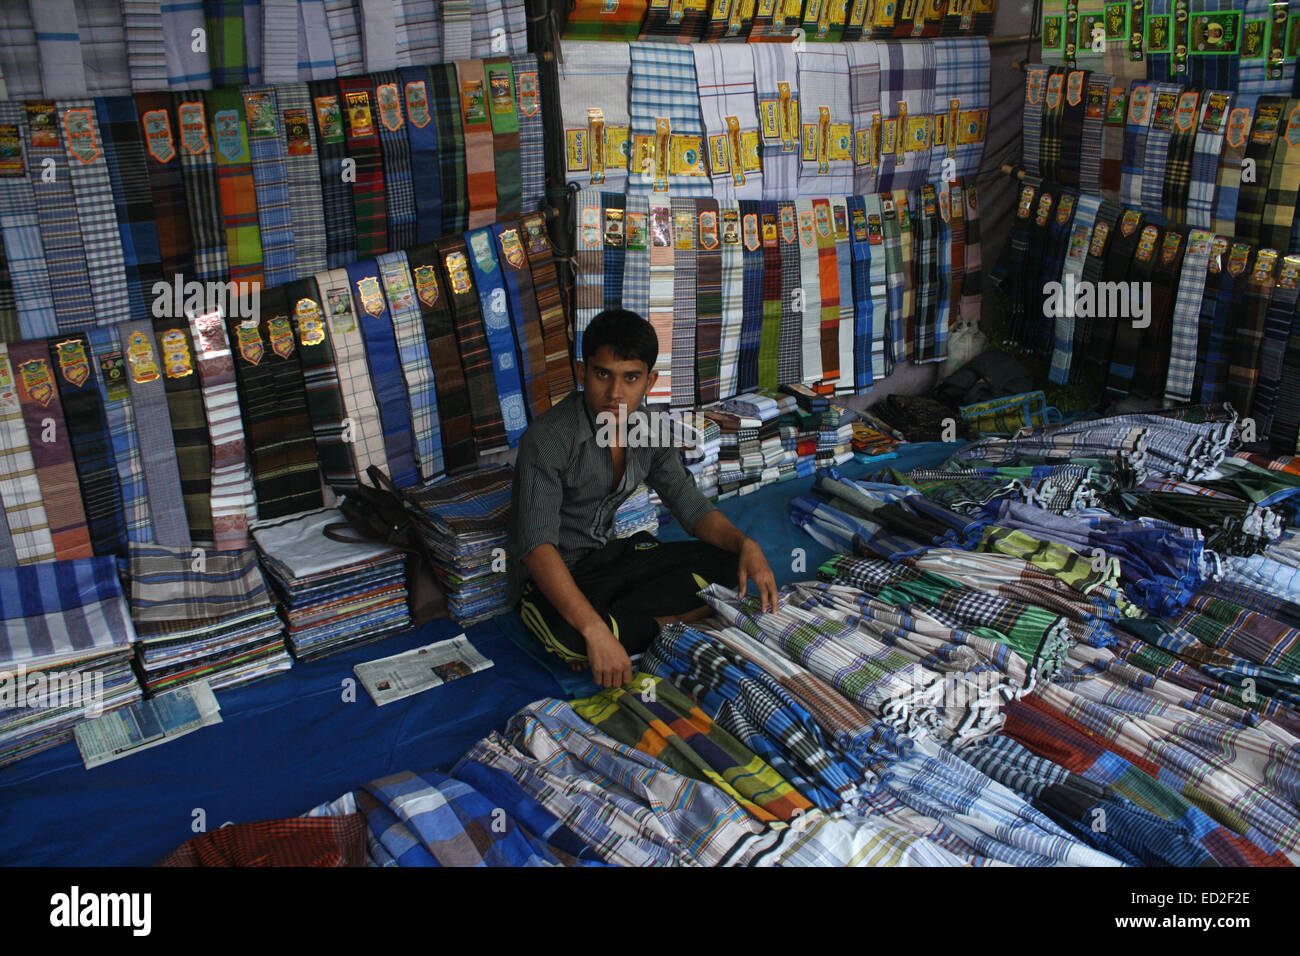 A Bangladeshi clothe vendor he waits for customers at a wholesale market at karwan Bazar in Dhaka on December 24, - Stock Image